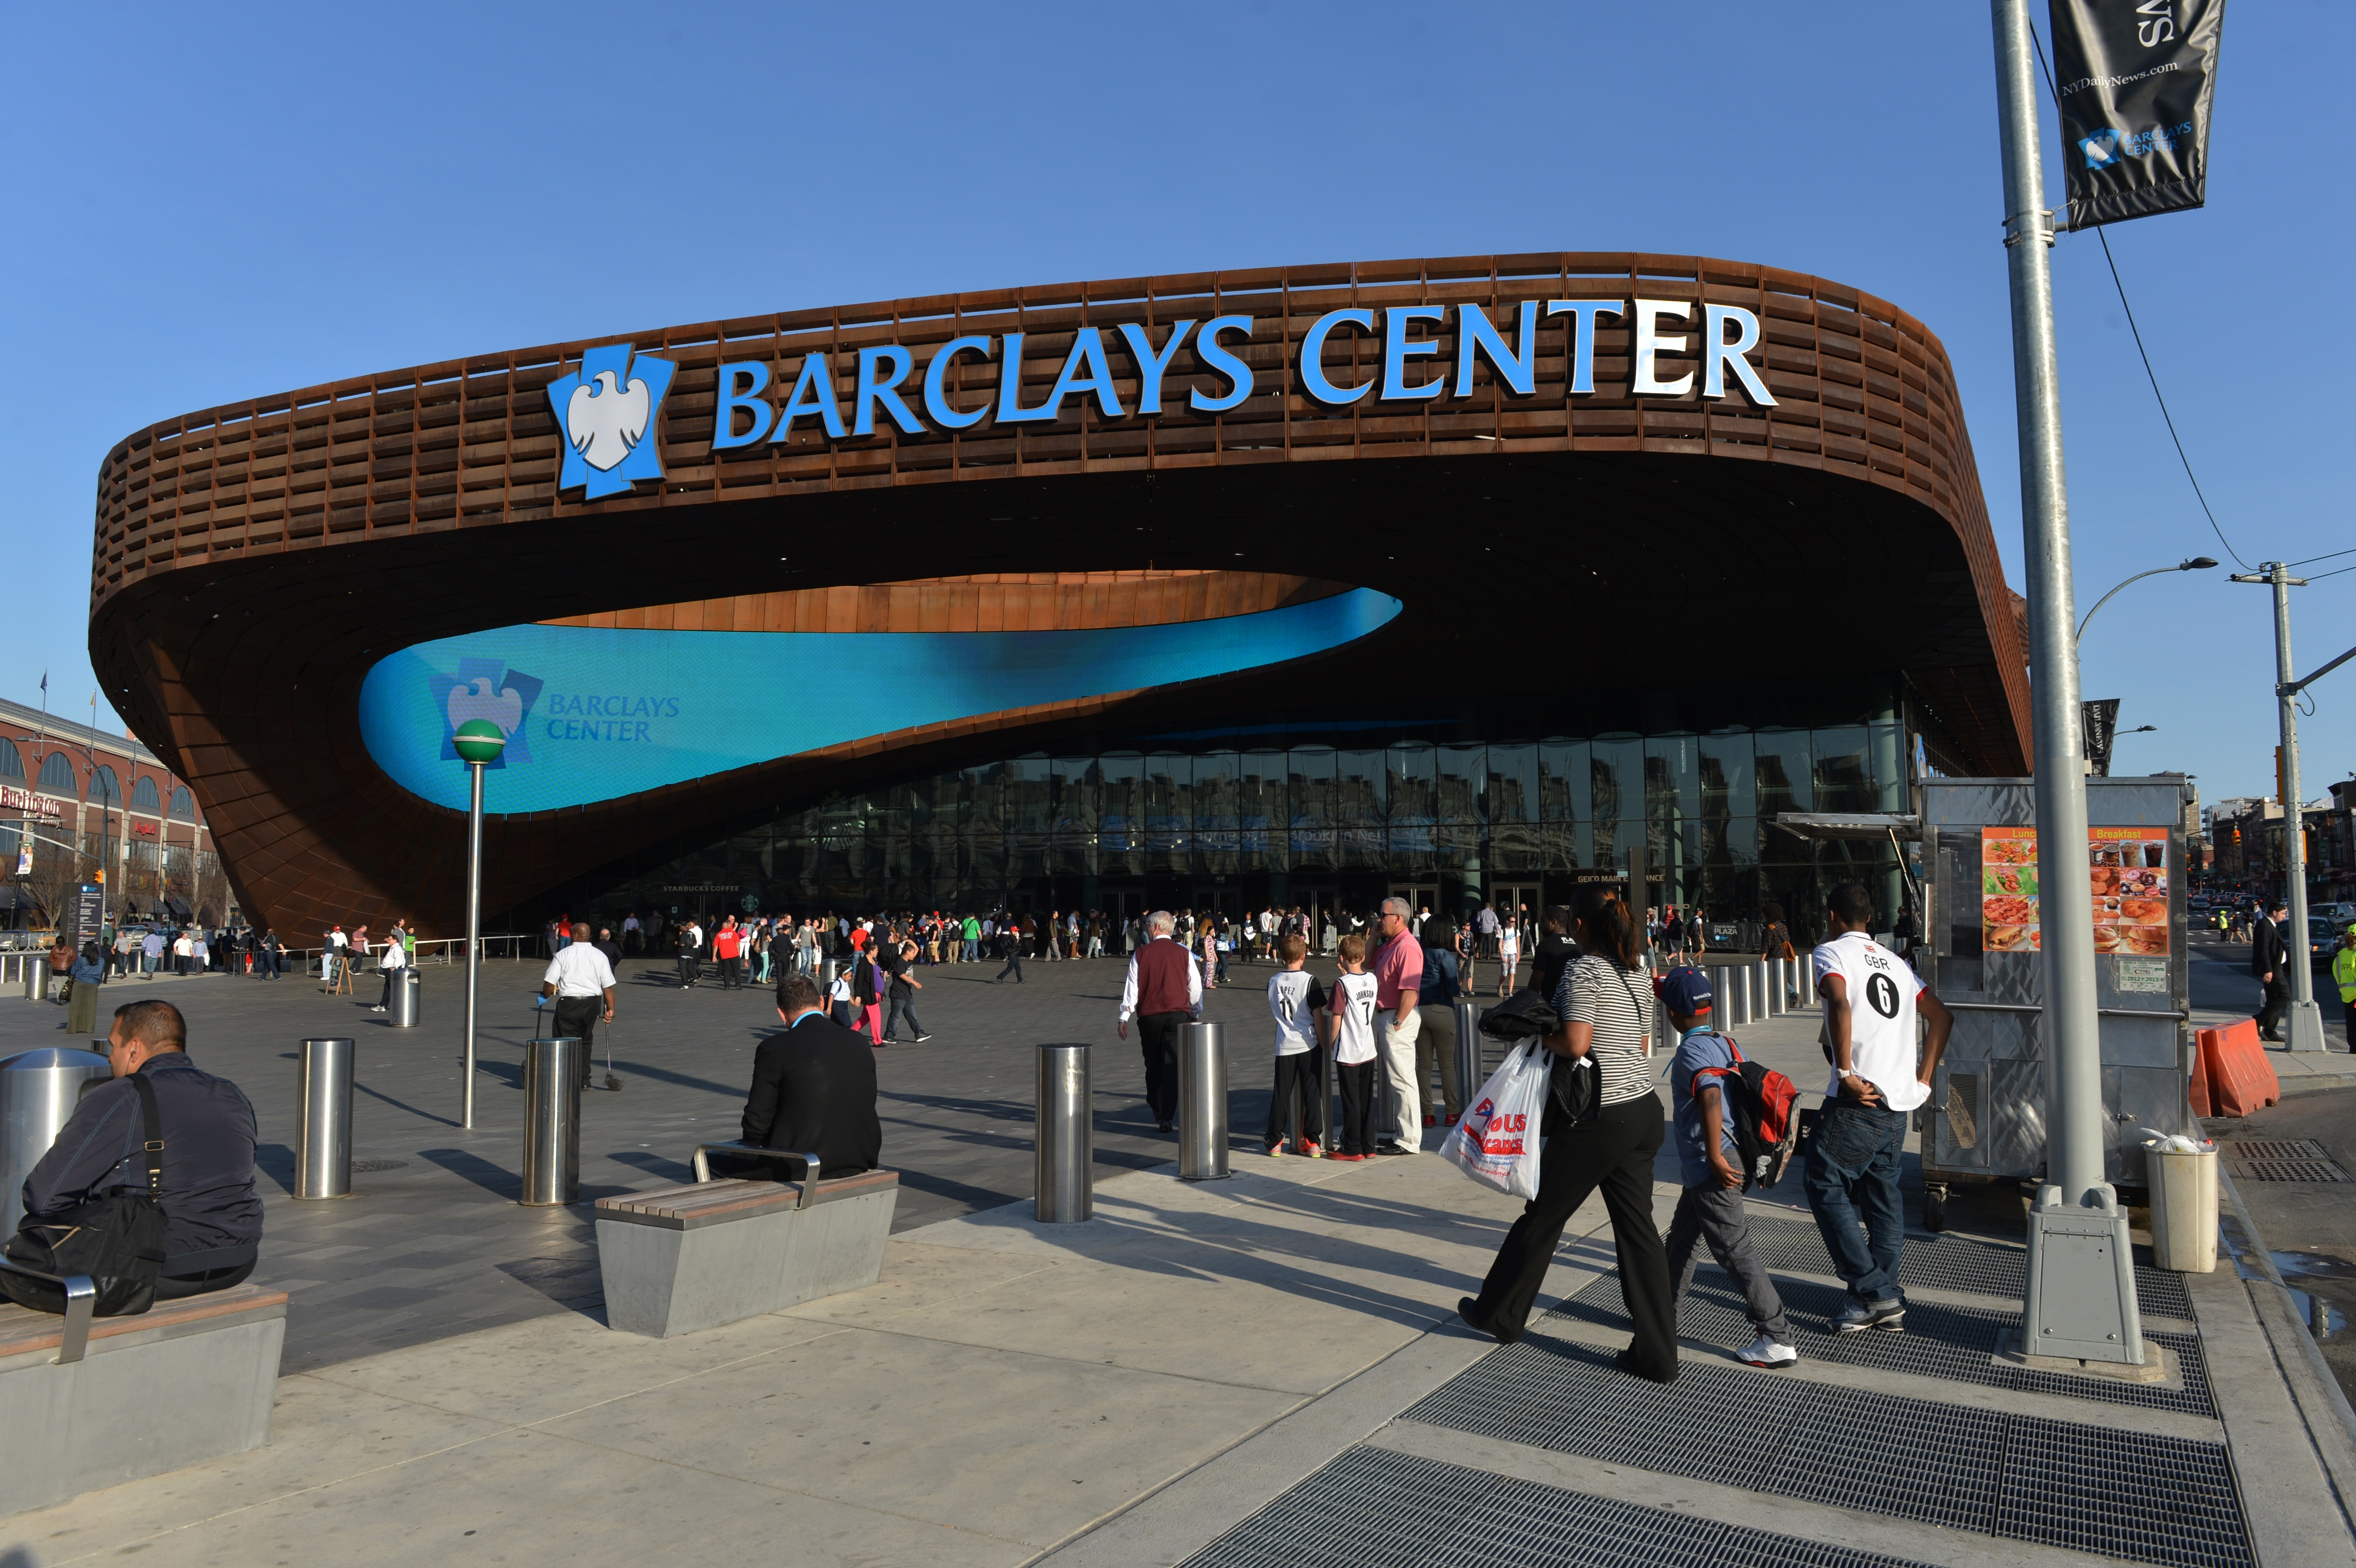 Exterior view of the Barclays Center before a Brooklyn Nets basketball game in the Brooklyn borough of New York City, April 9, 2013.